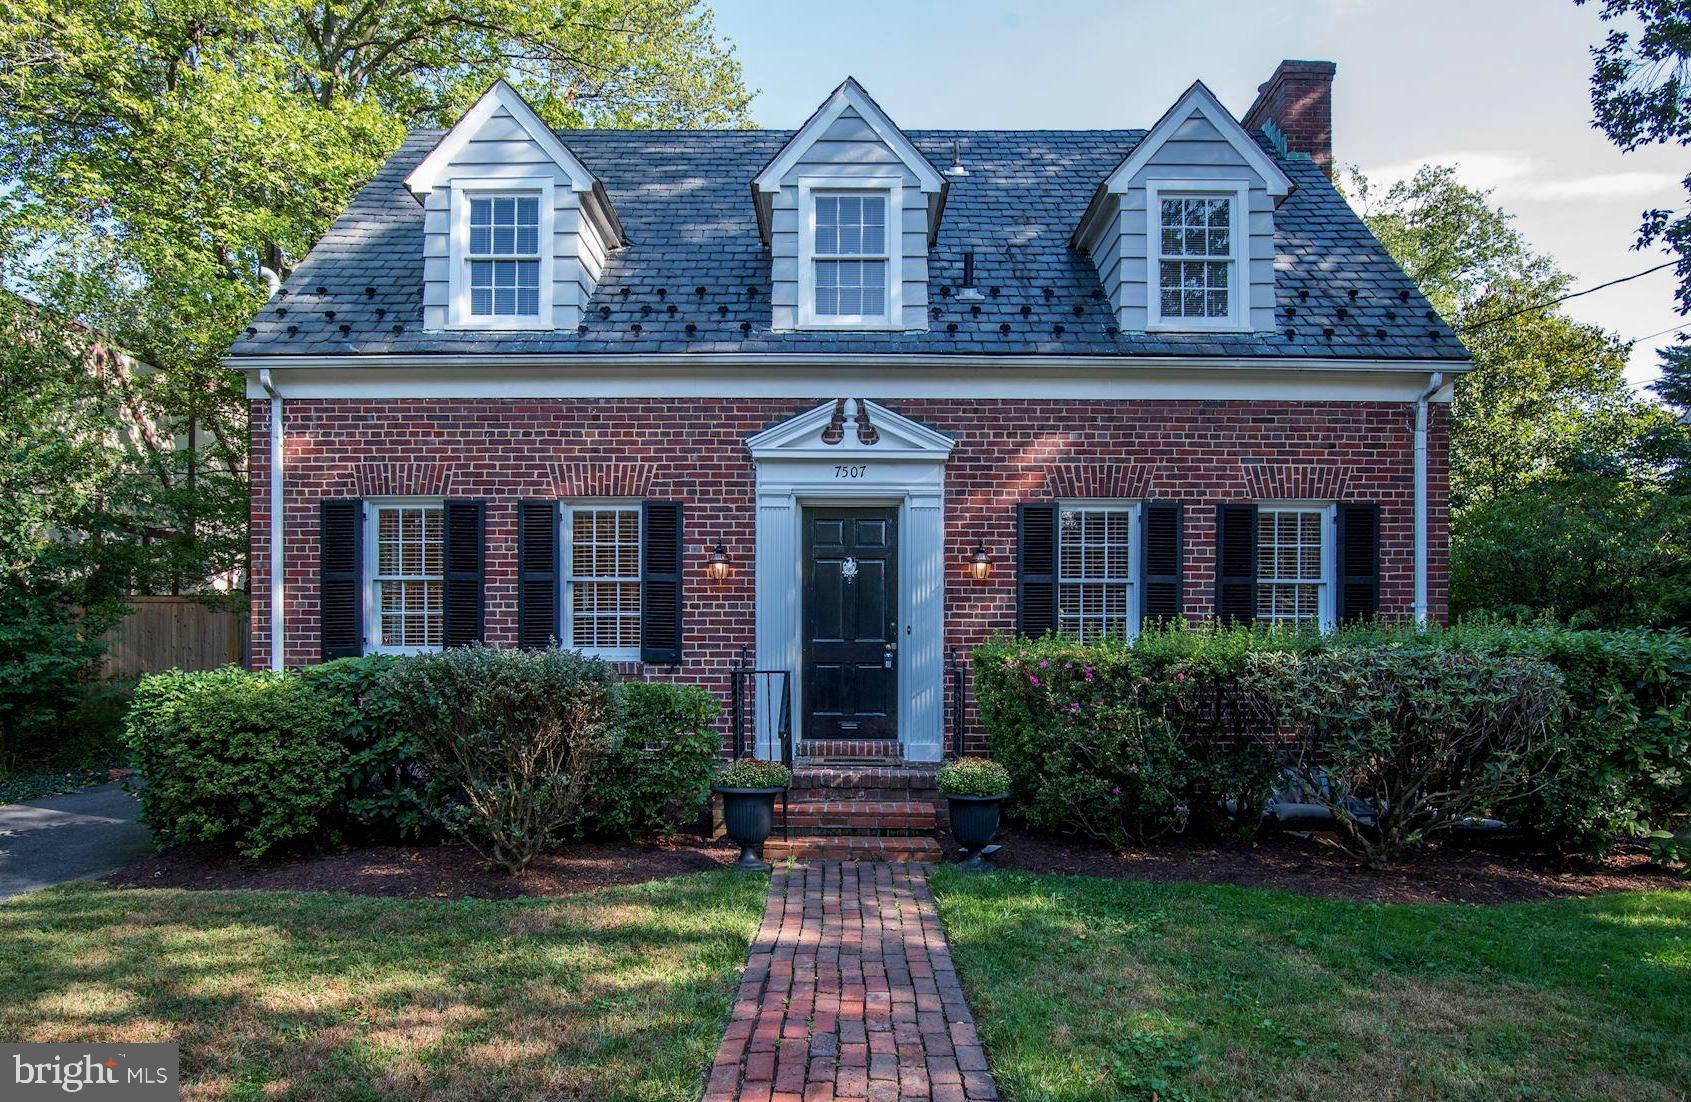 7507 BROOKVILLE Rd, Chevy Chase, MD, 20815